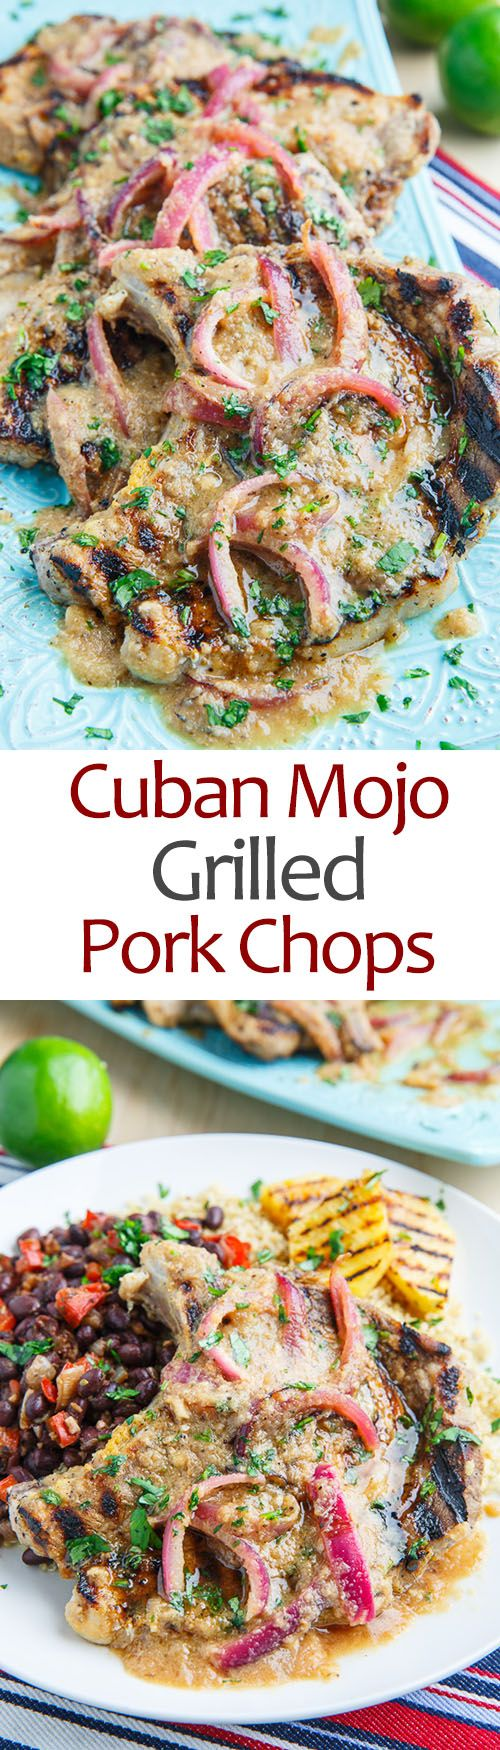 Mojo criollo pork chop recipe